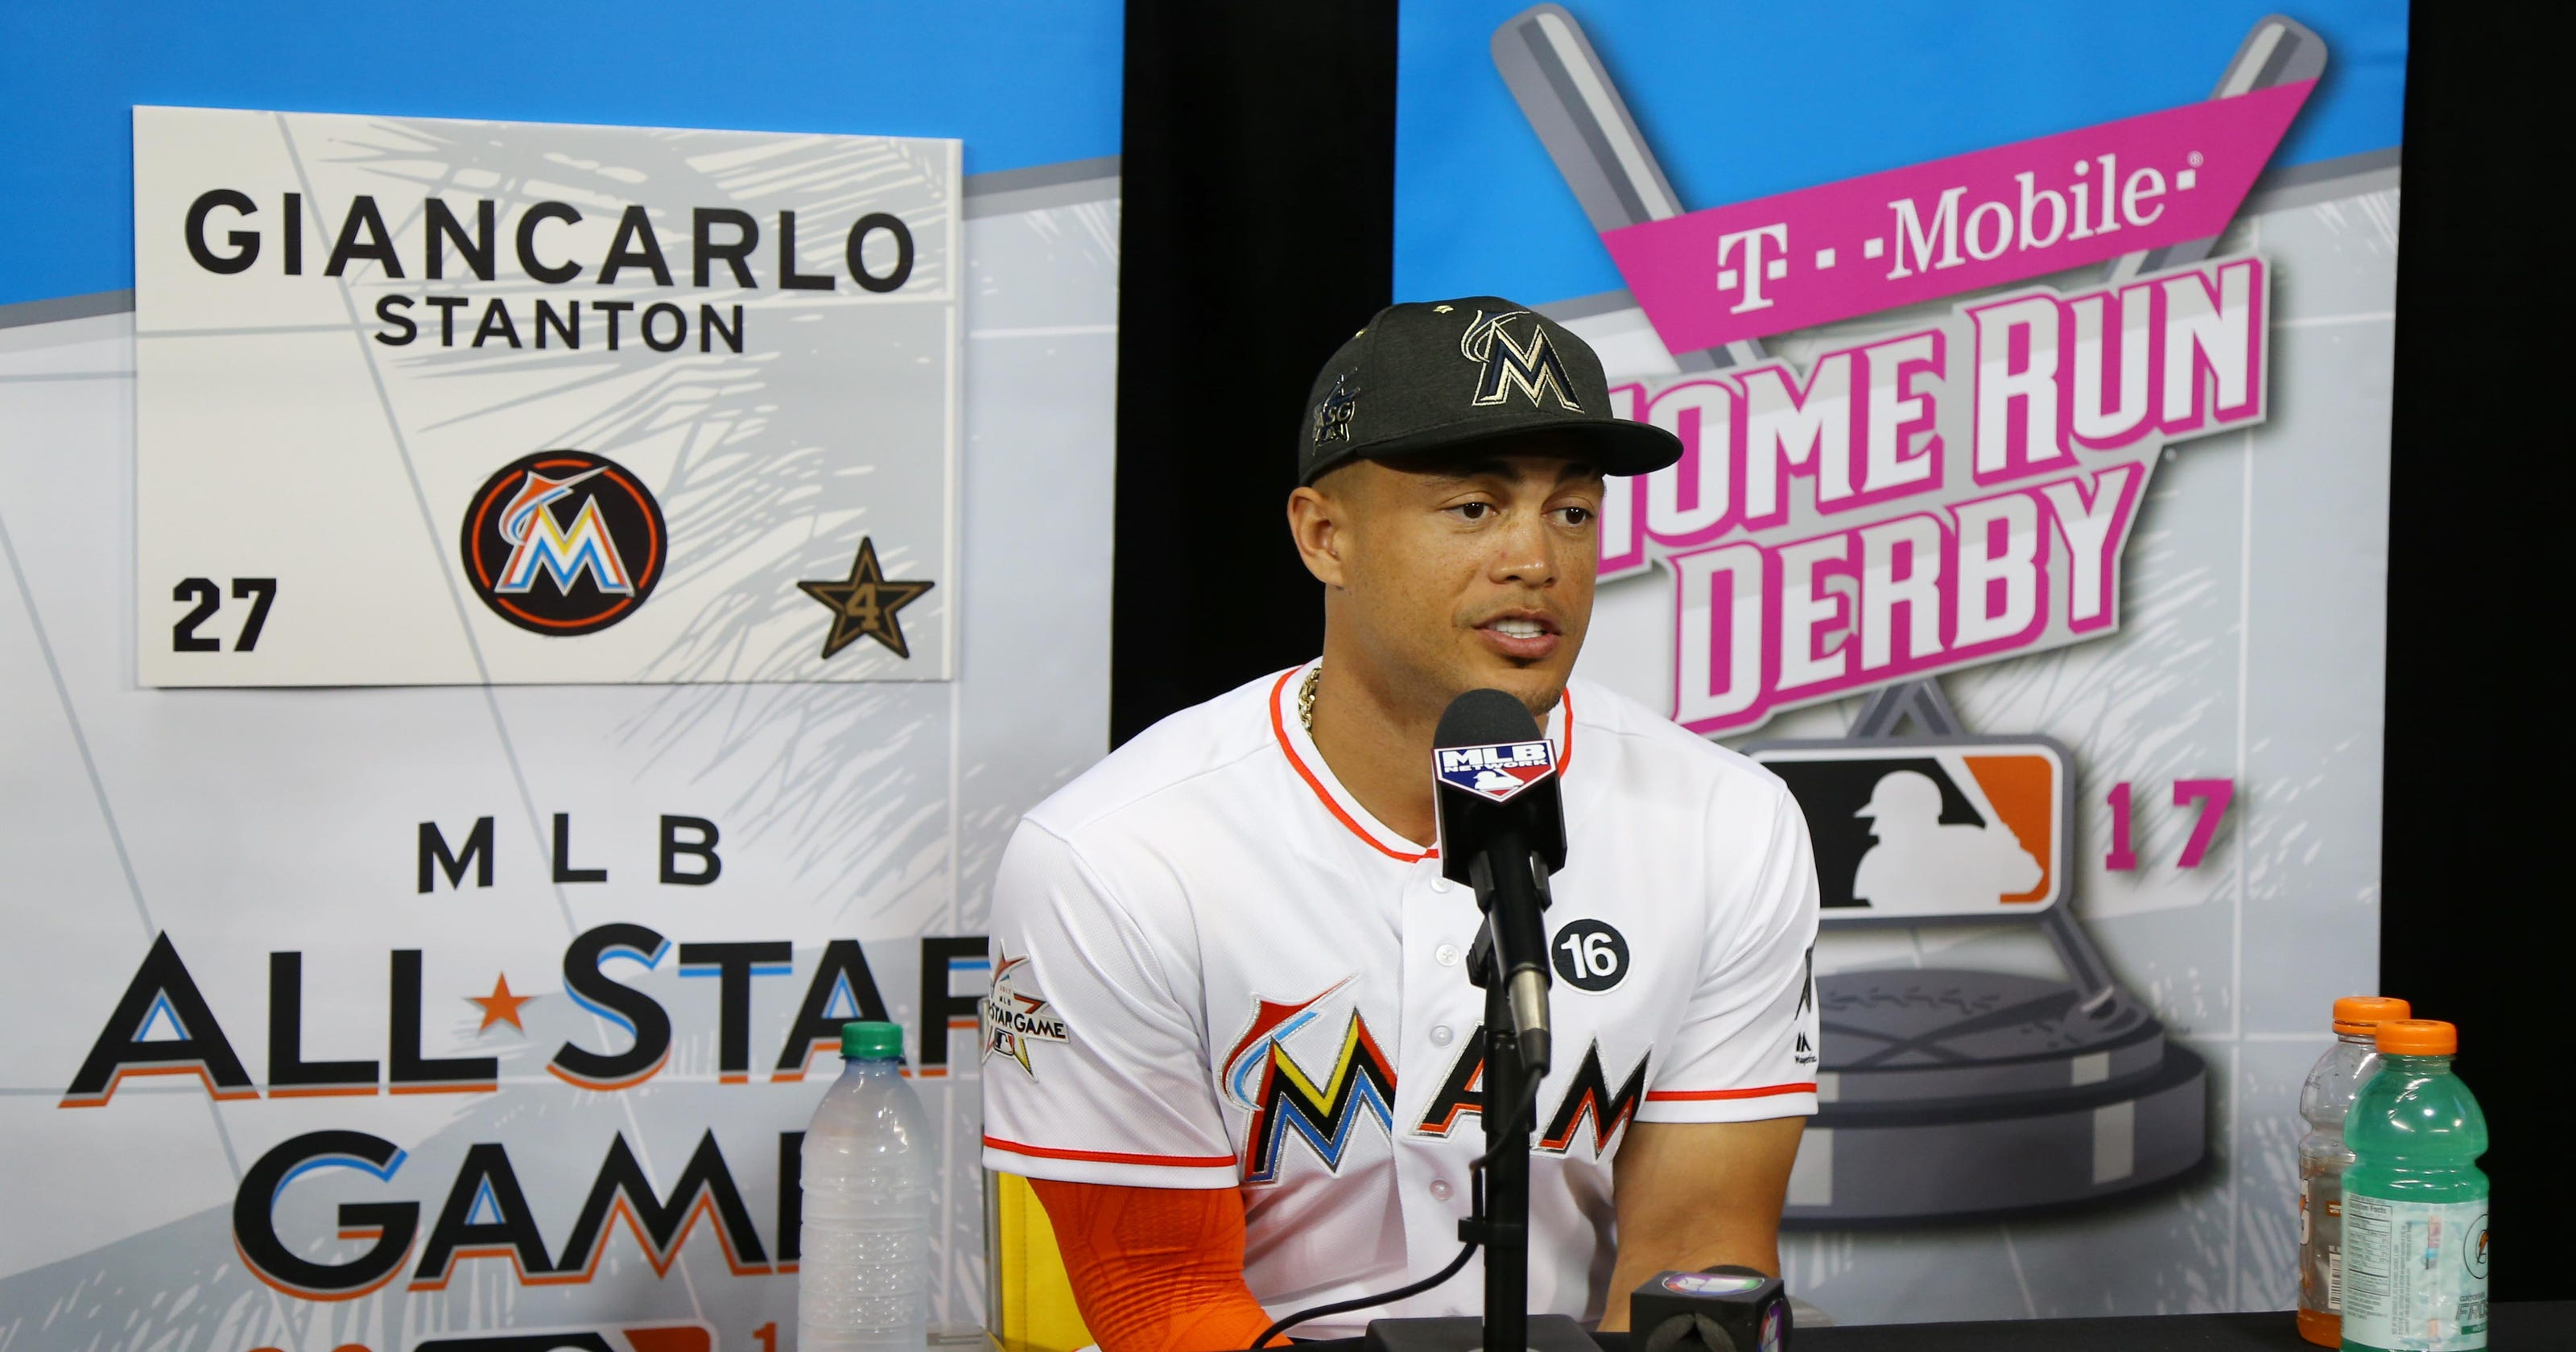 441a7704297 Demand for Home Run Derby outpaces MLB All-Star Game